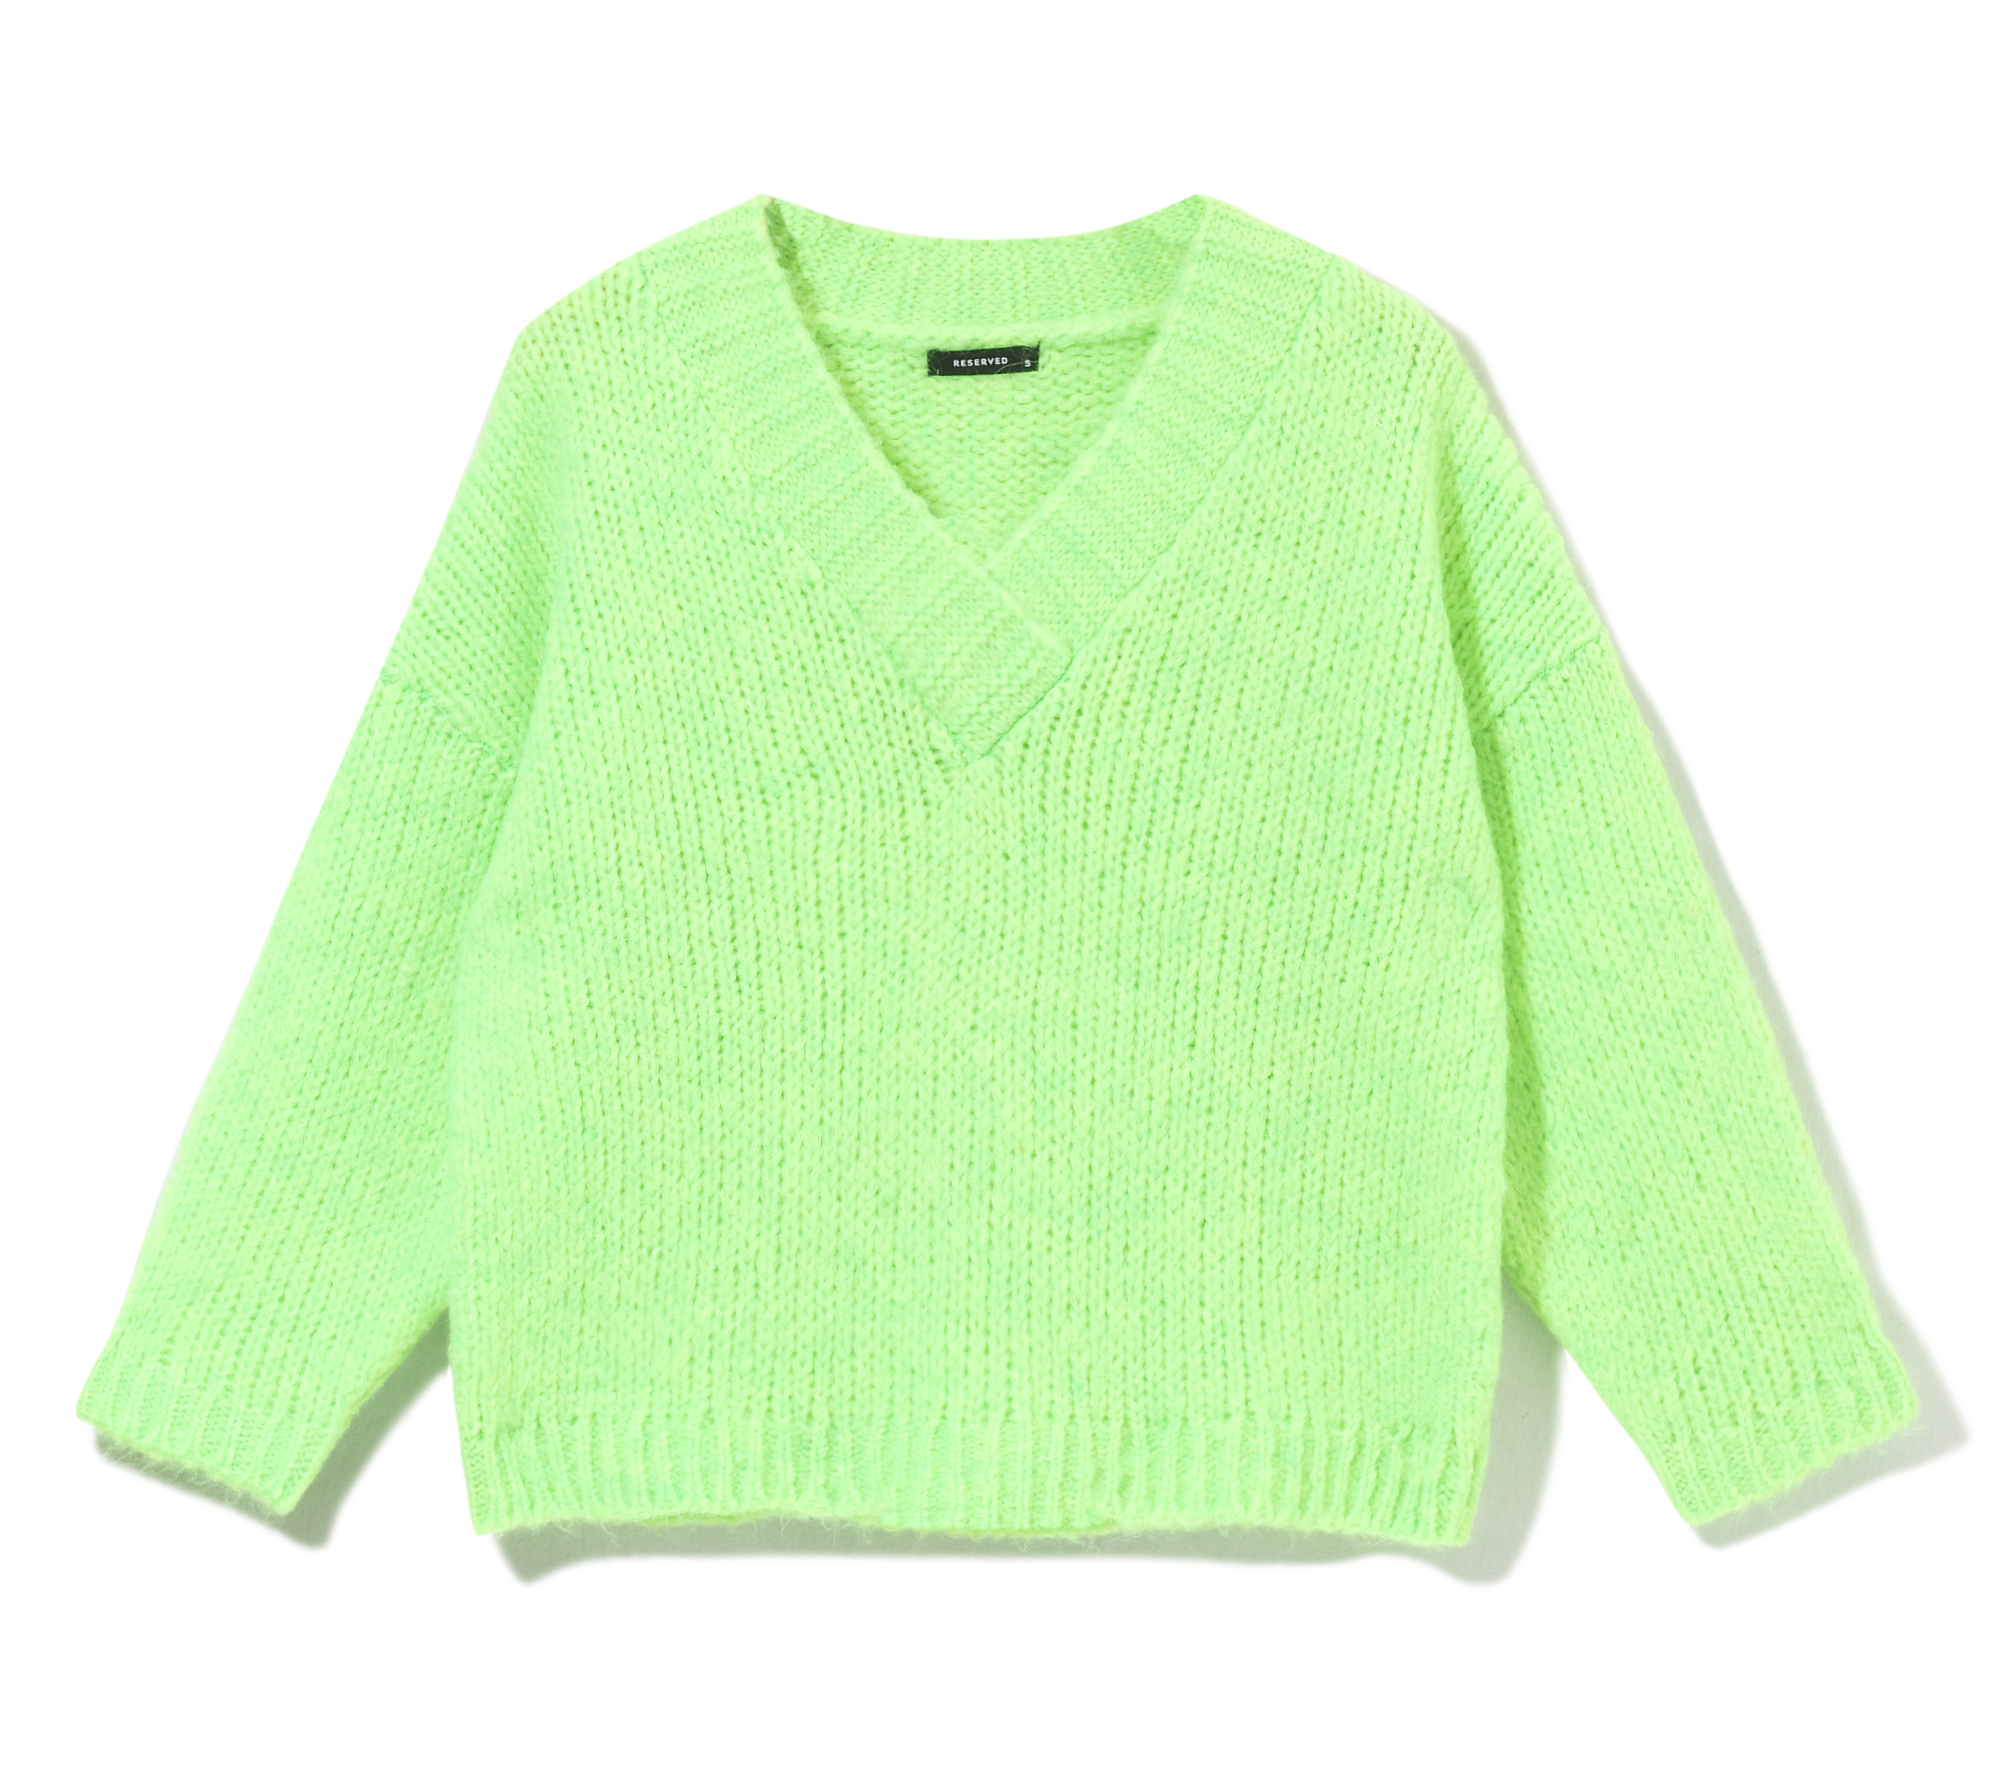 Green neon sweater from Reserved